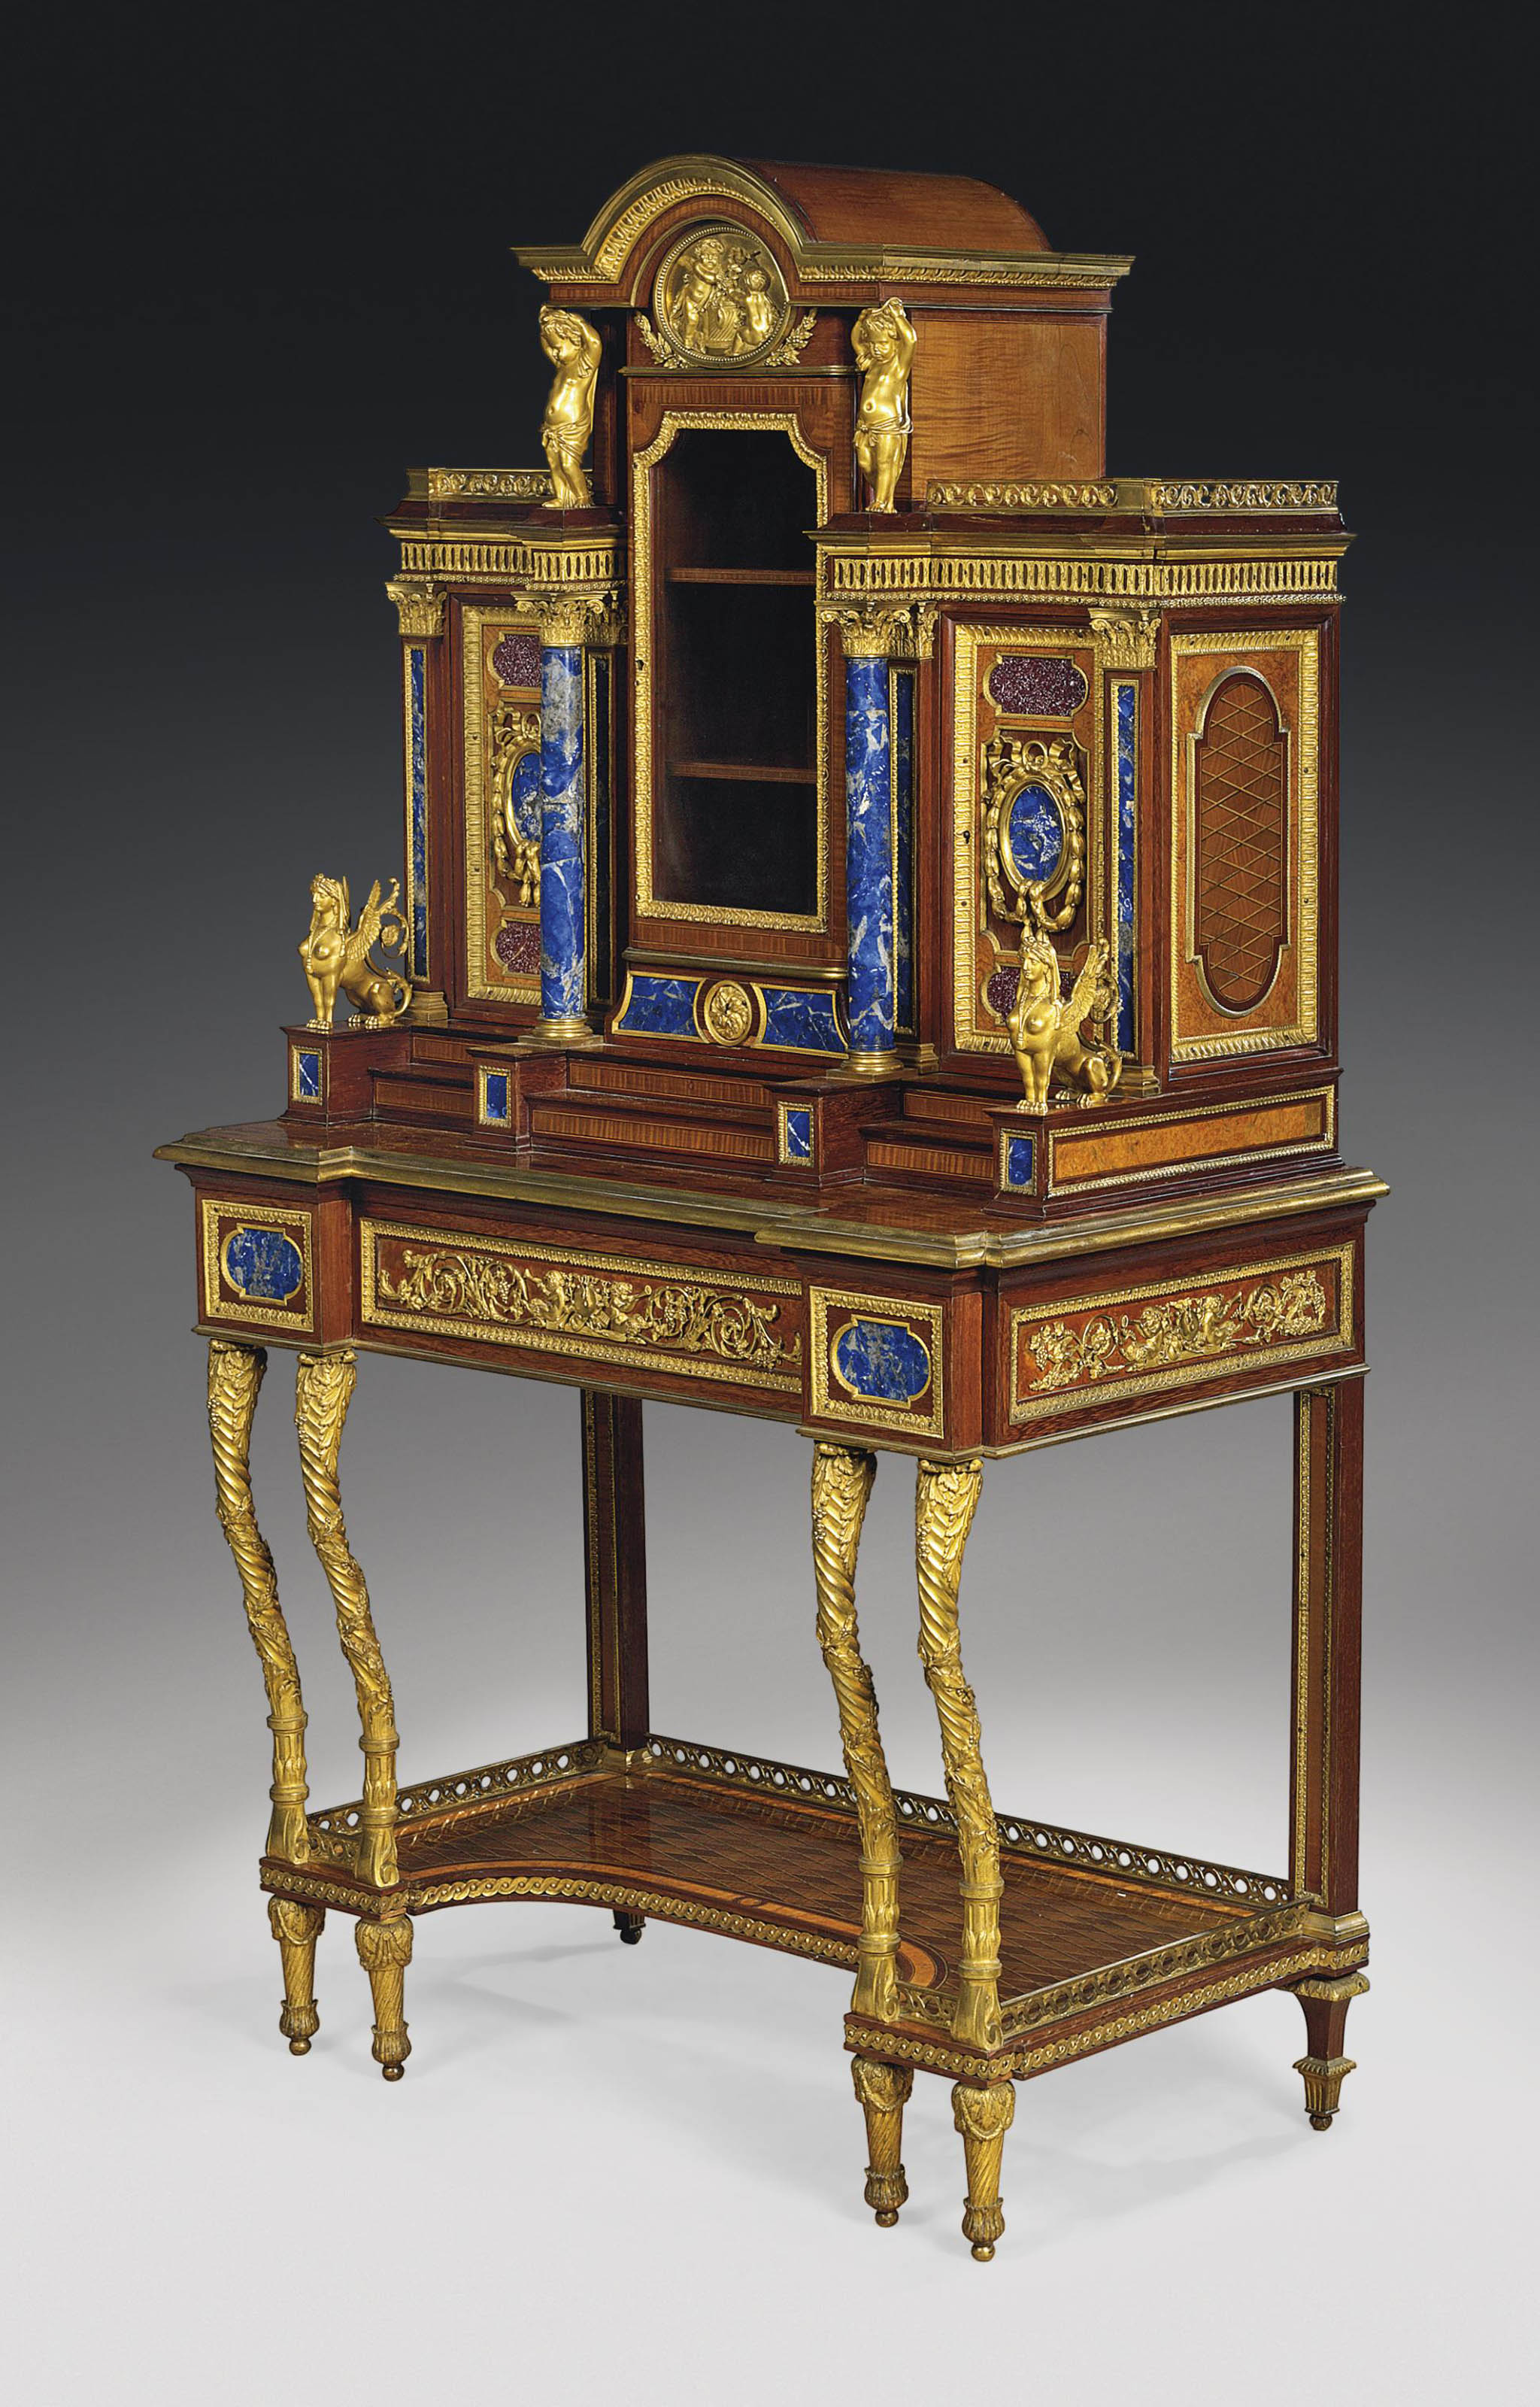 A FINE FRENCH ORMOLU, PORPHYRY AND LAPIS LAZULI-MOUNTED SATINWOOD, BURR-MAPLE AND MAHOGANY PARQUETRY VITRINE-CABINET-ON-STAND